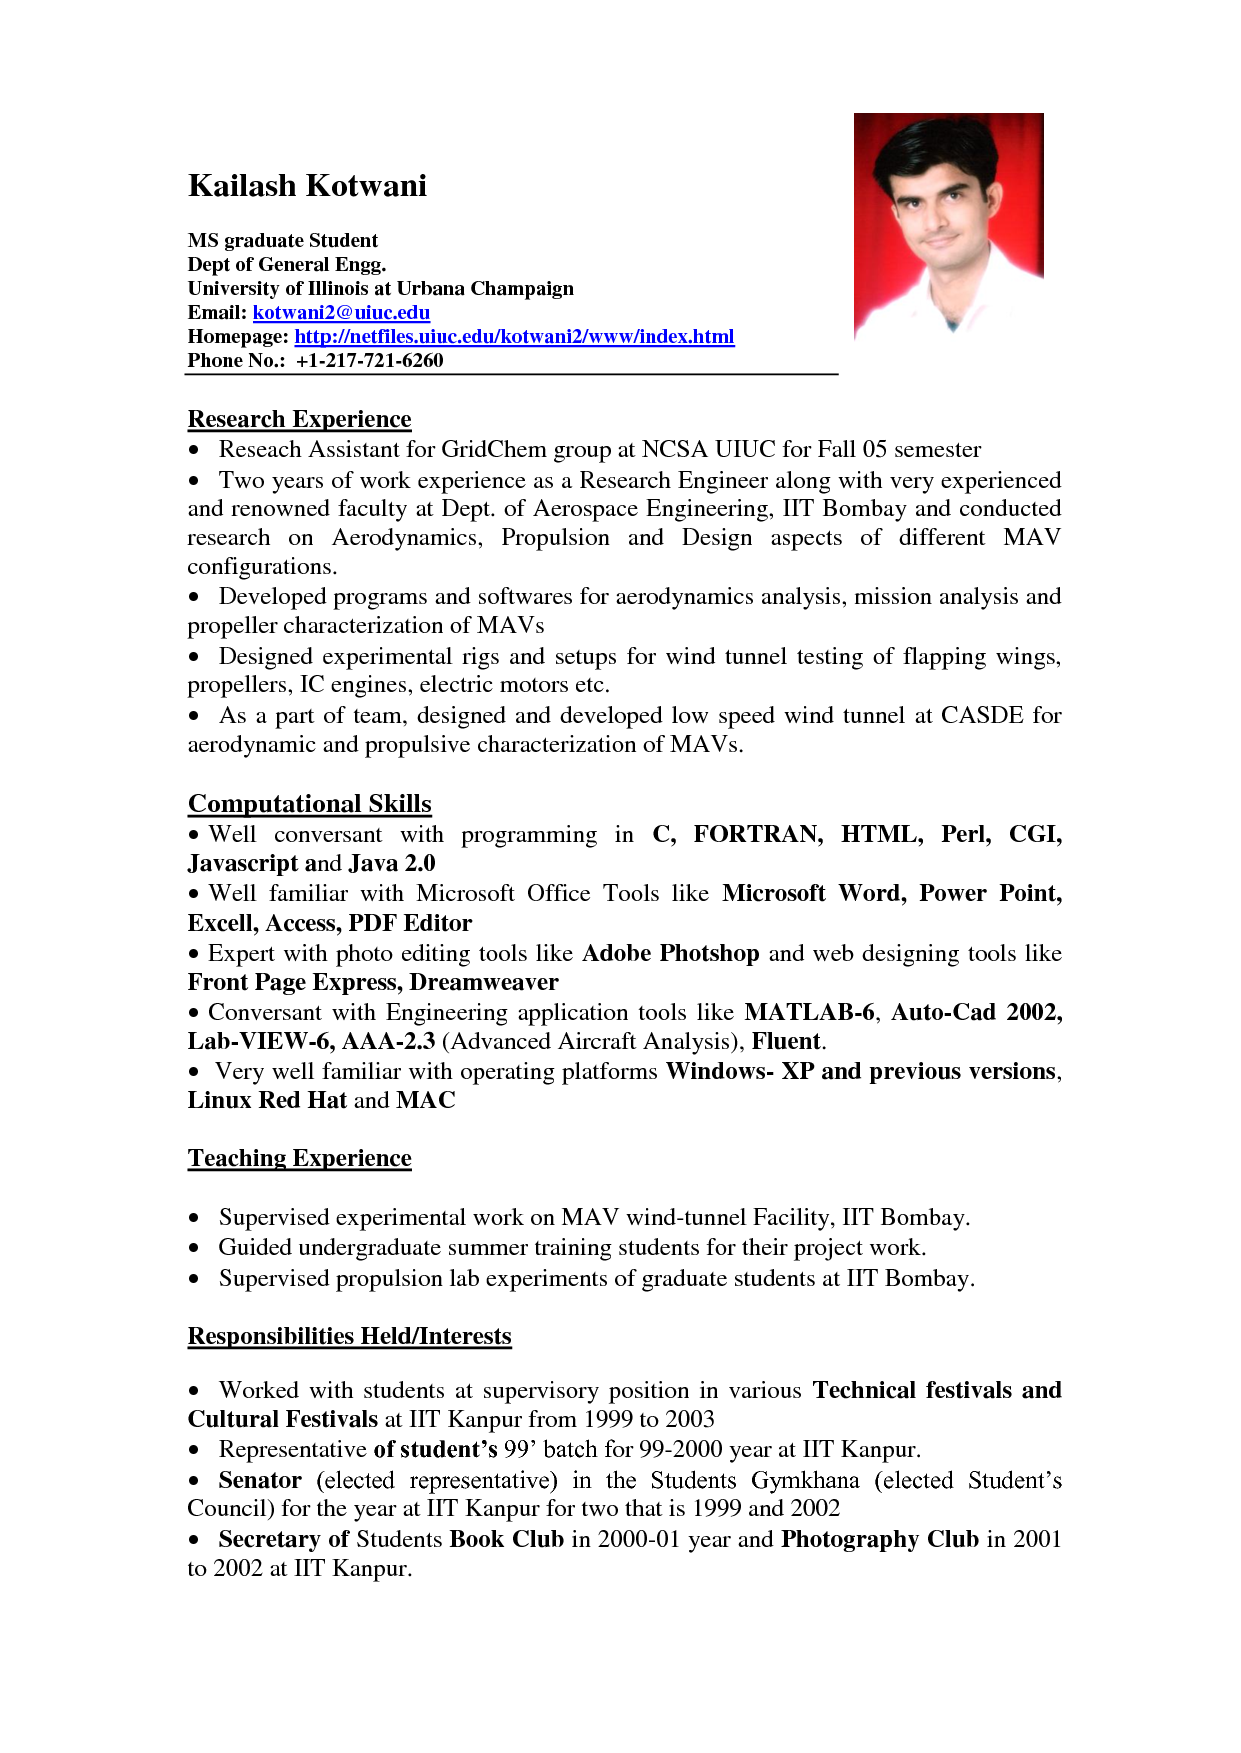 High School Student Resume Examples No Work Experience No Work Experience  Resume Content. How To Write A Resume Resume .  Example Of Resume For Students